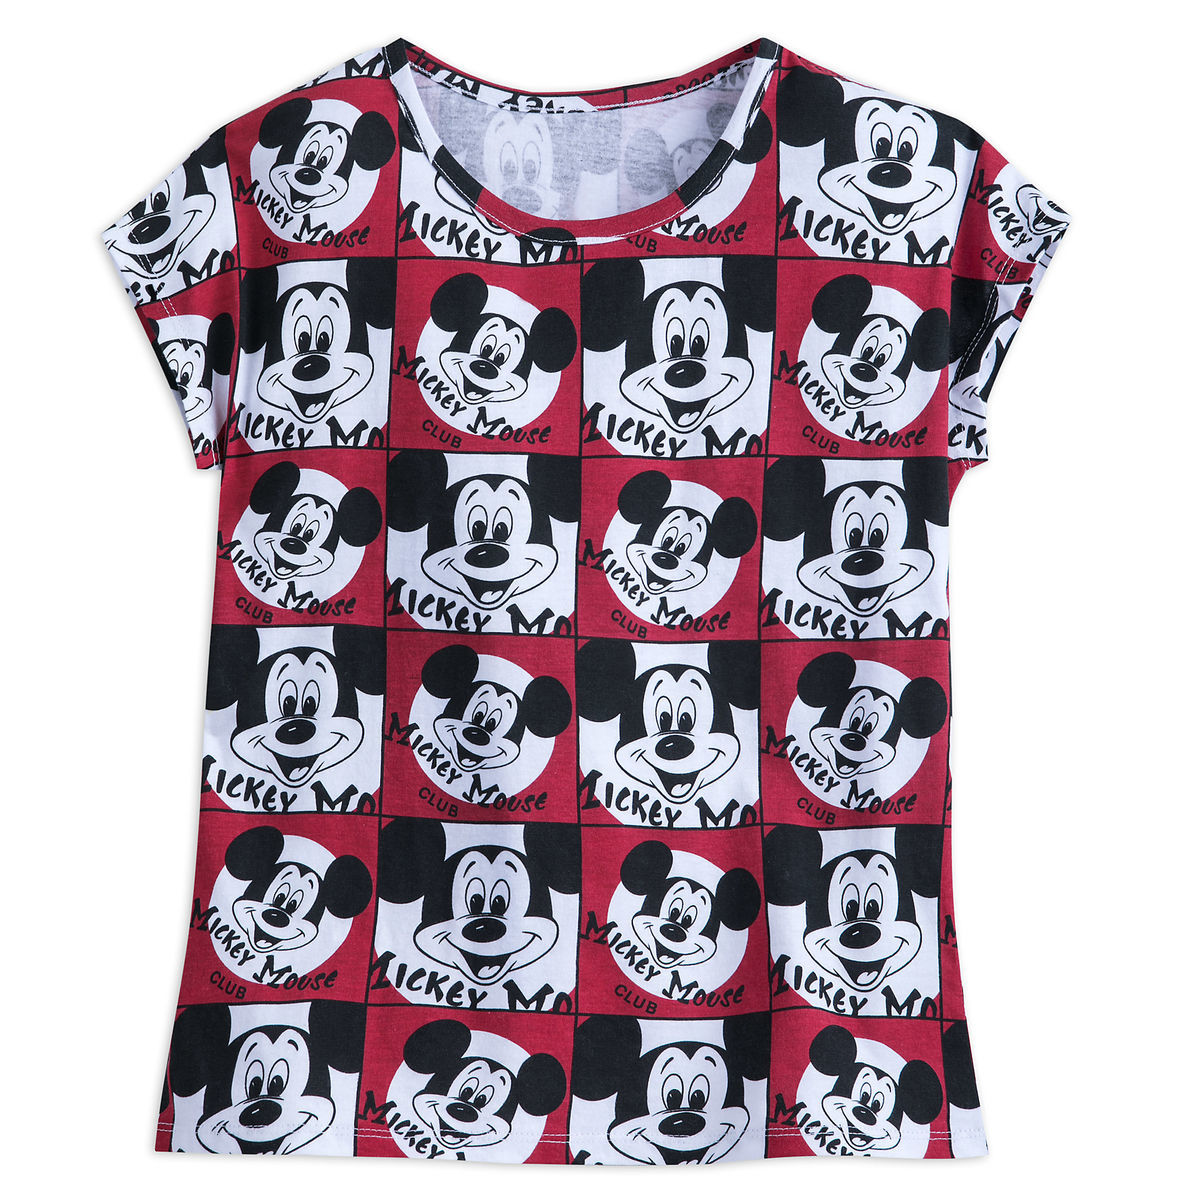 1b1e6d2e82697 Add to My Lists. Disney T-Shirt for Women - Mickey Mouse Club Allover Print